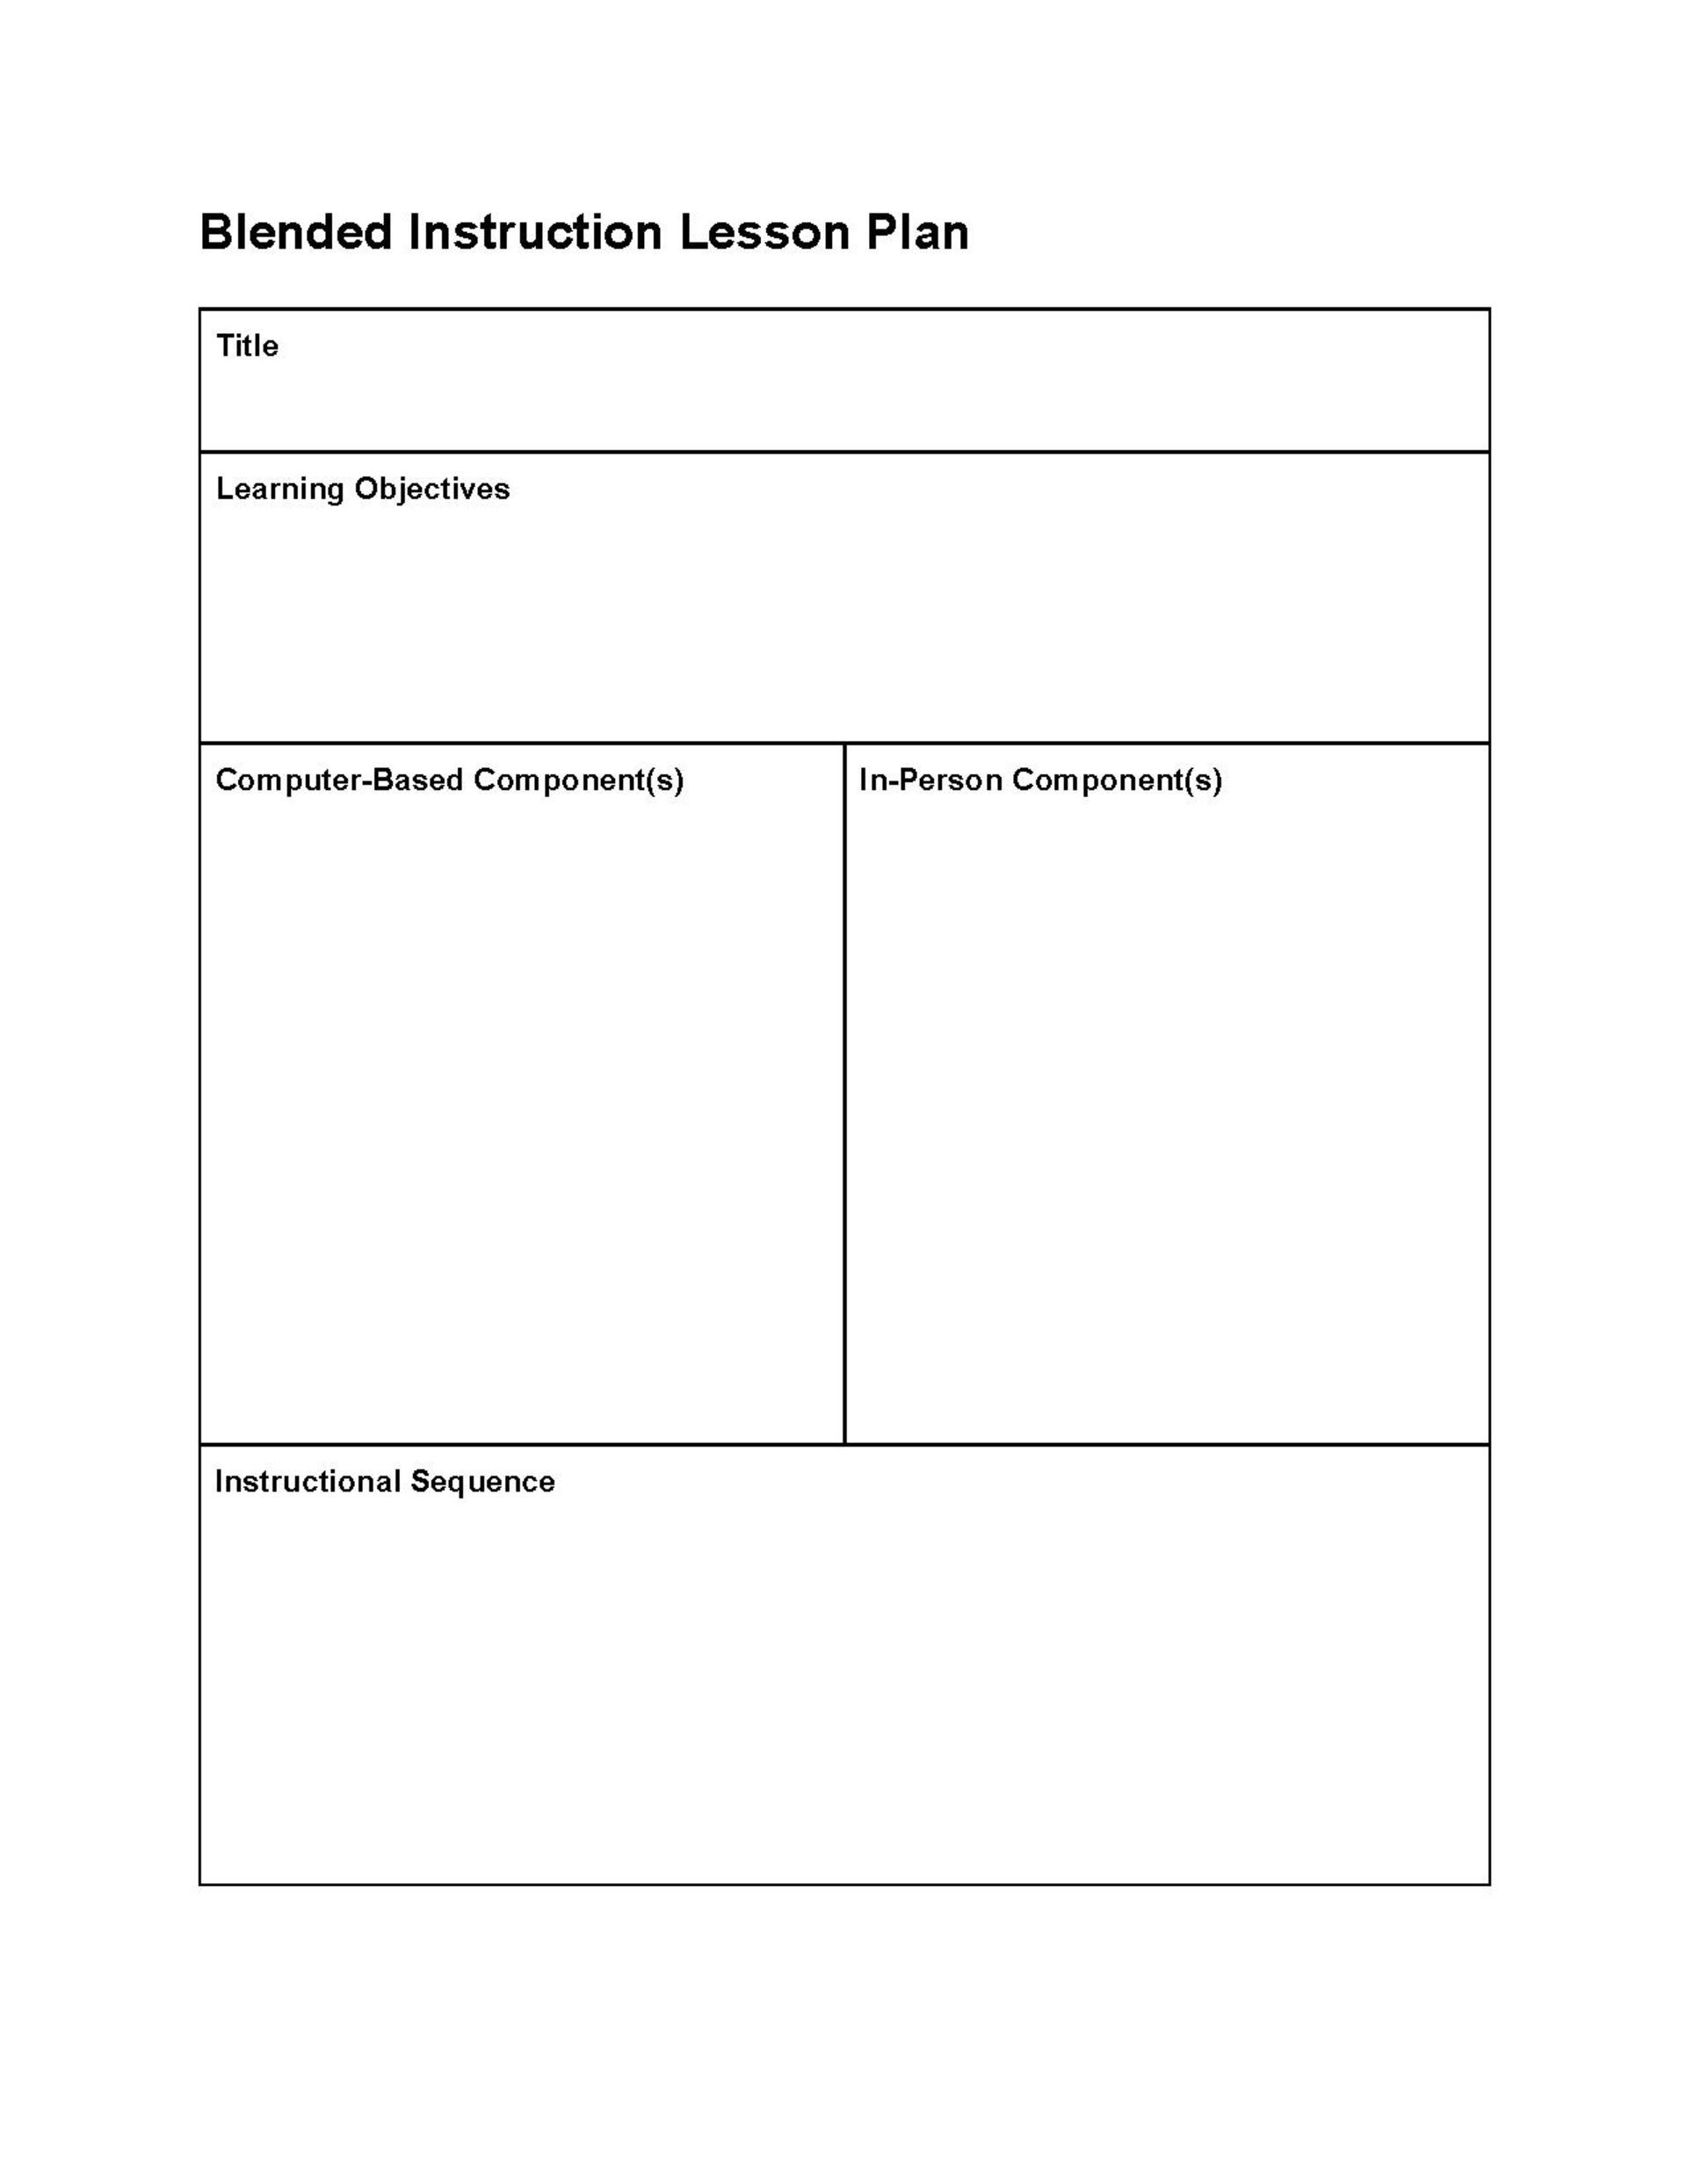 This editable lesson plan template can be used to create